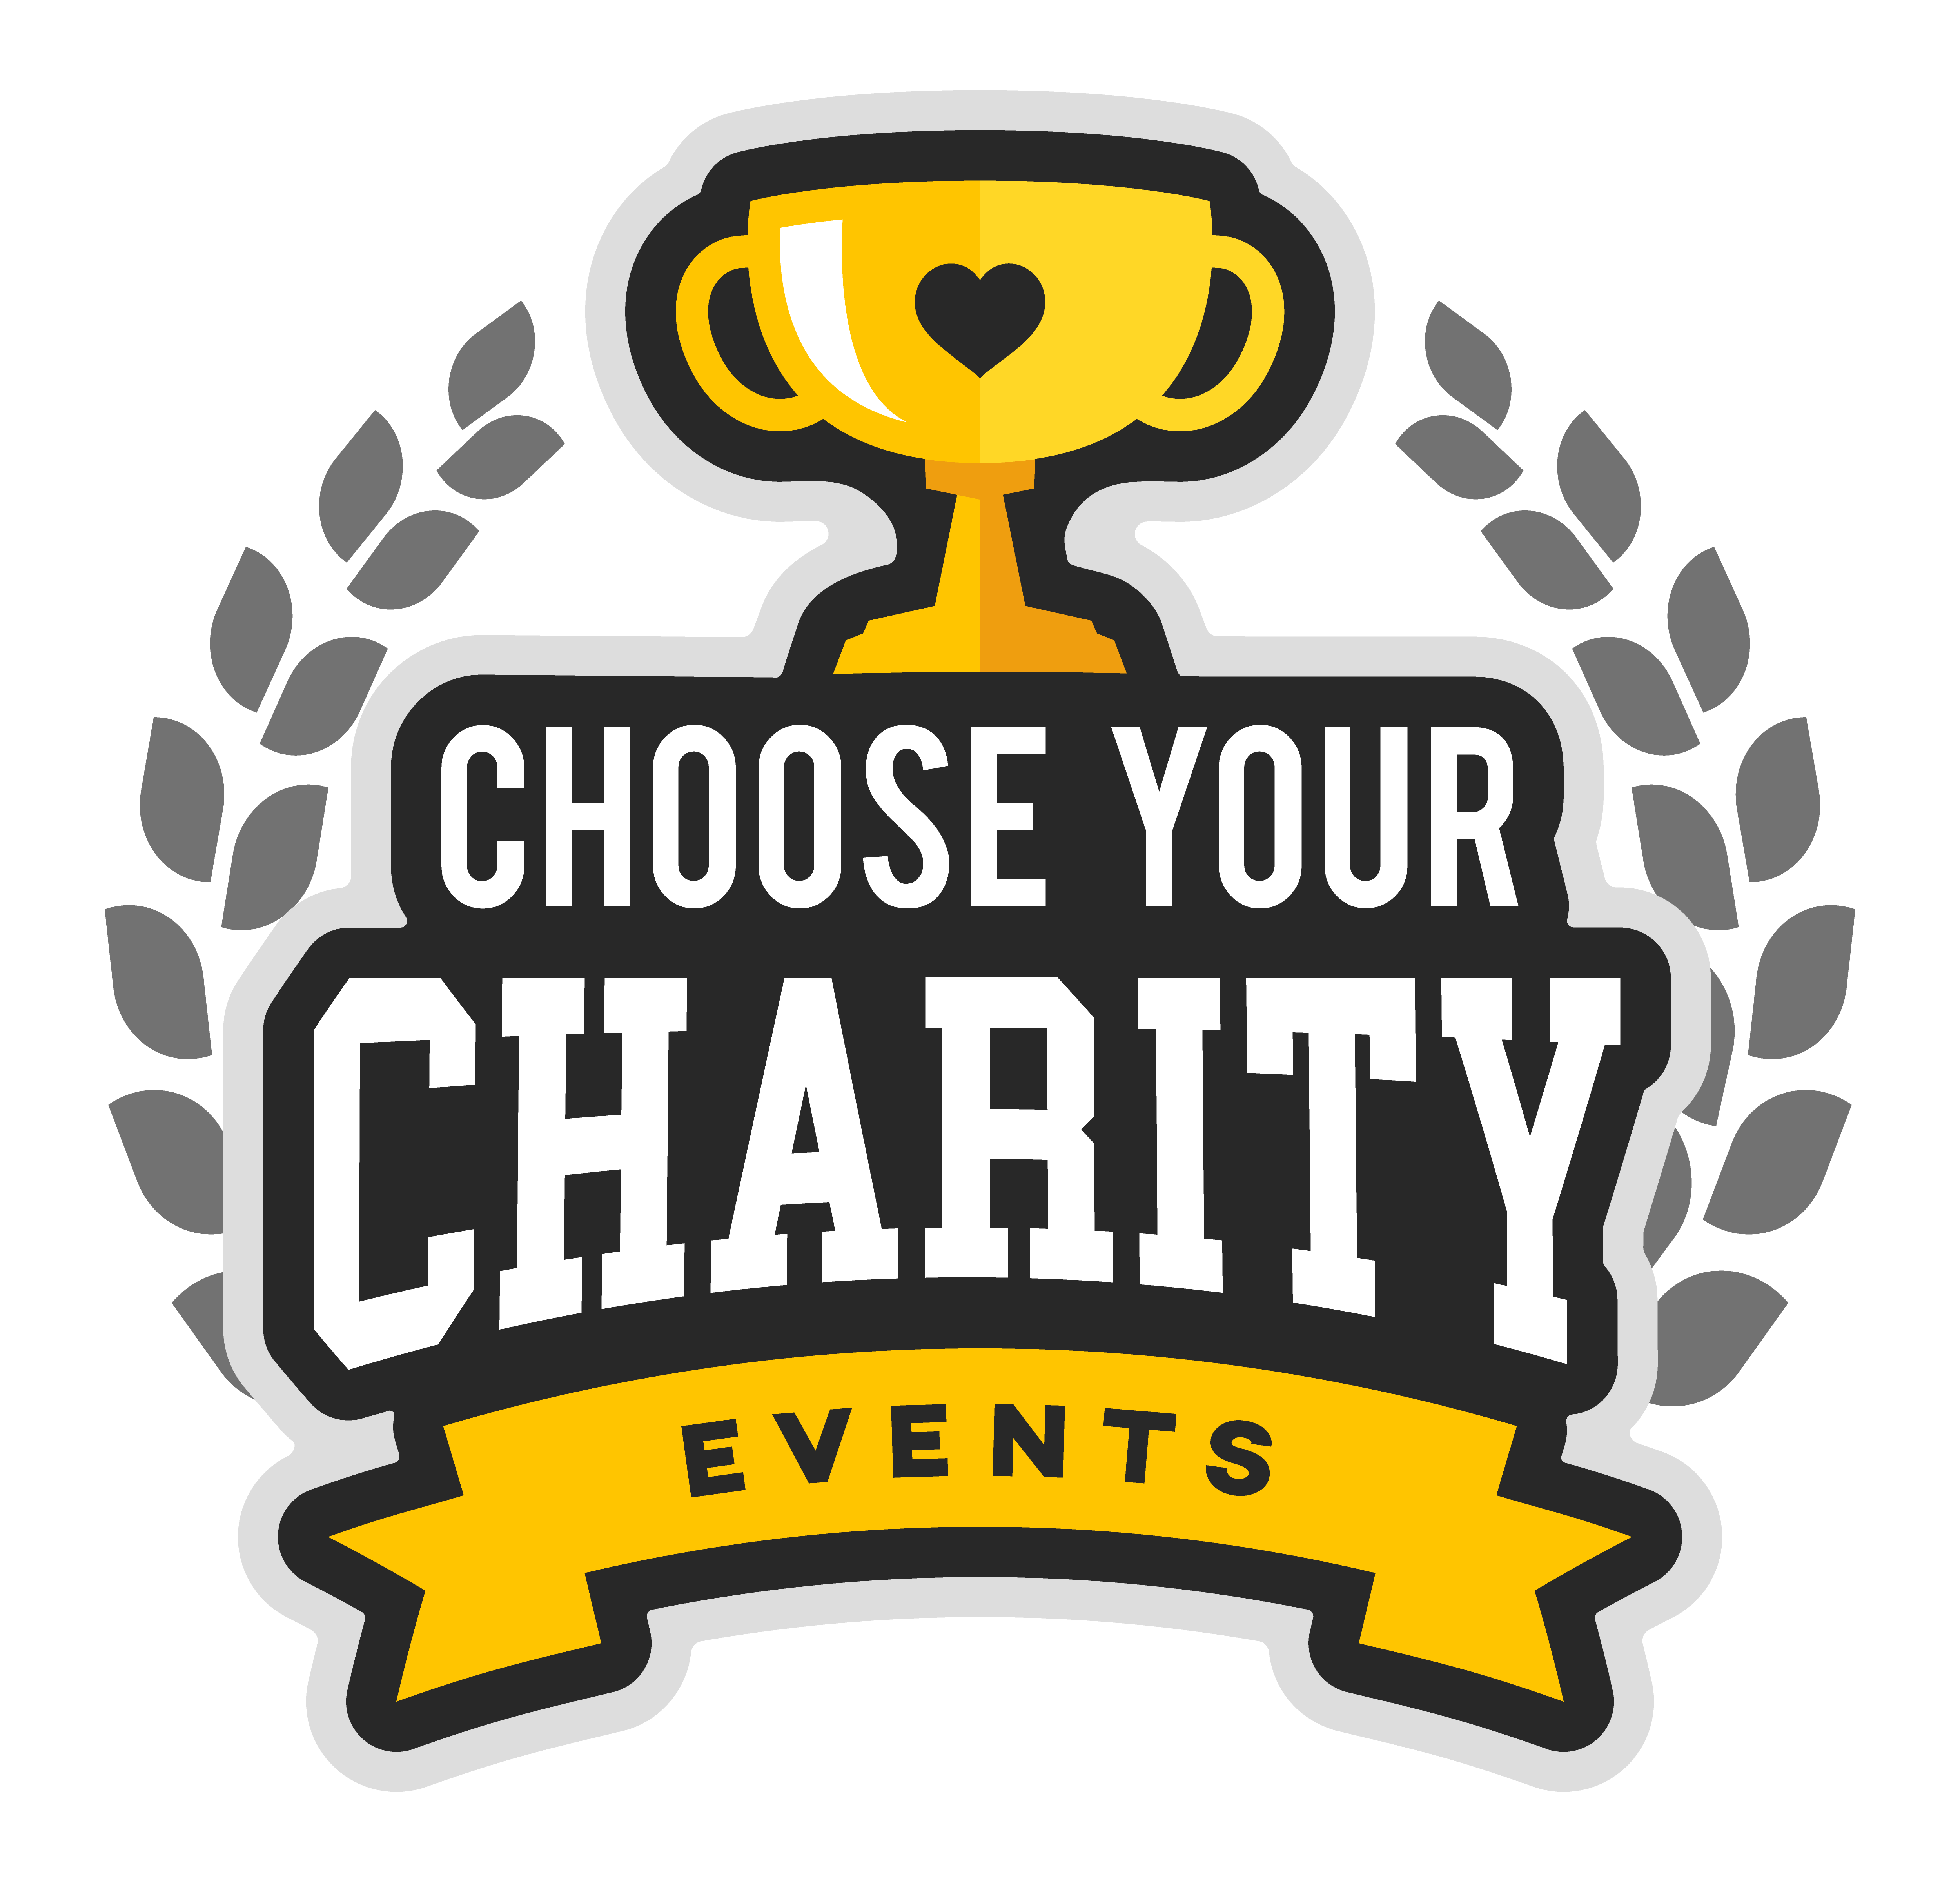 Choose Your Charity Events